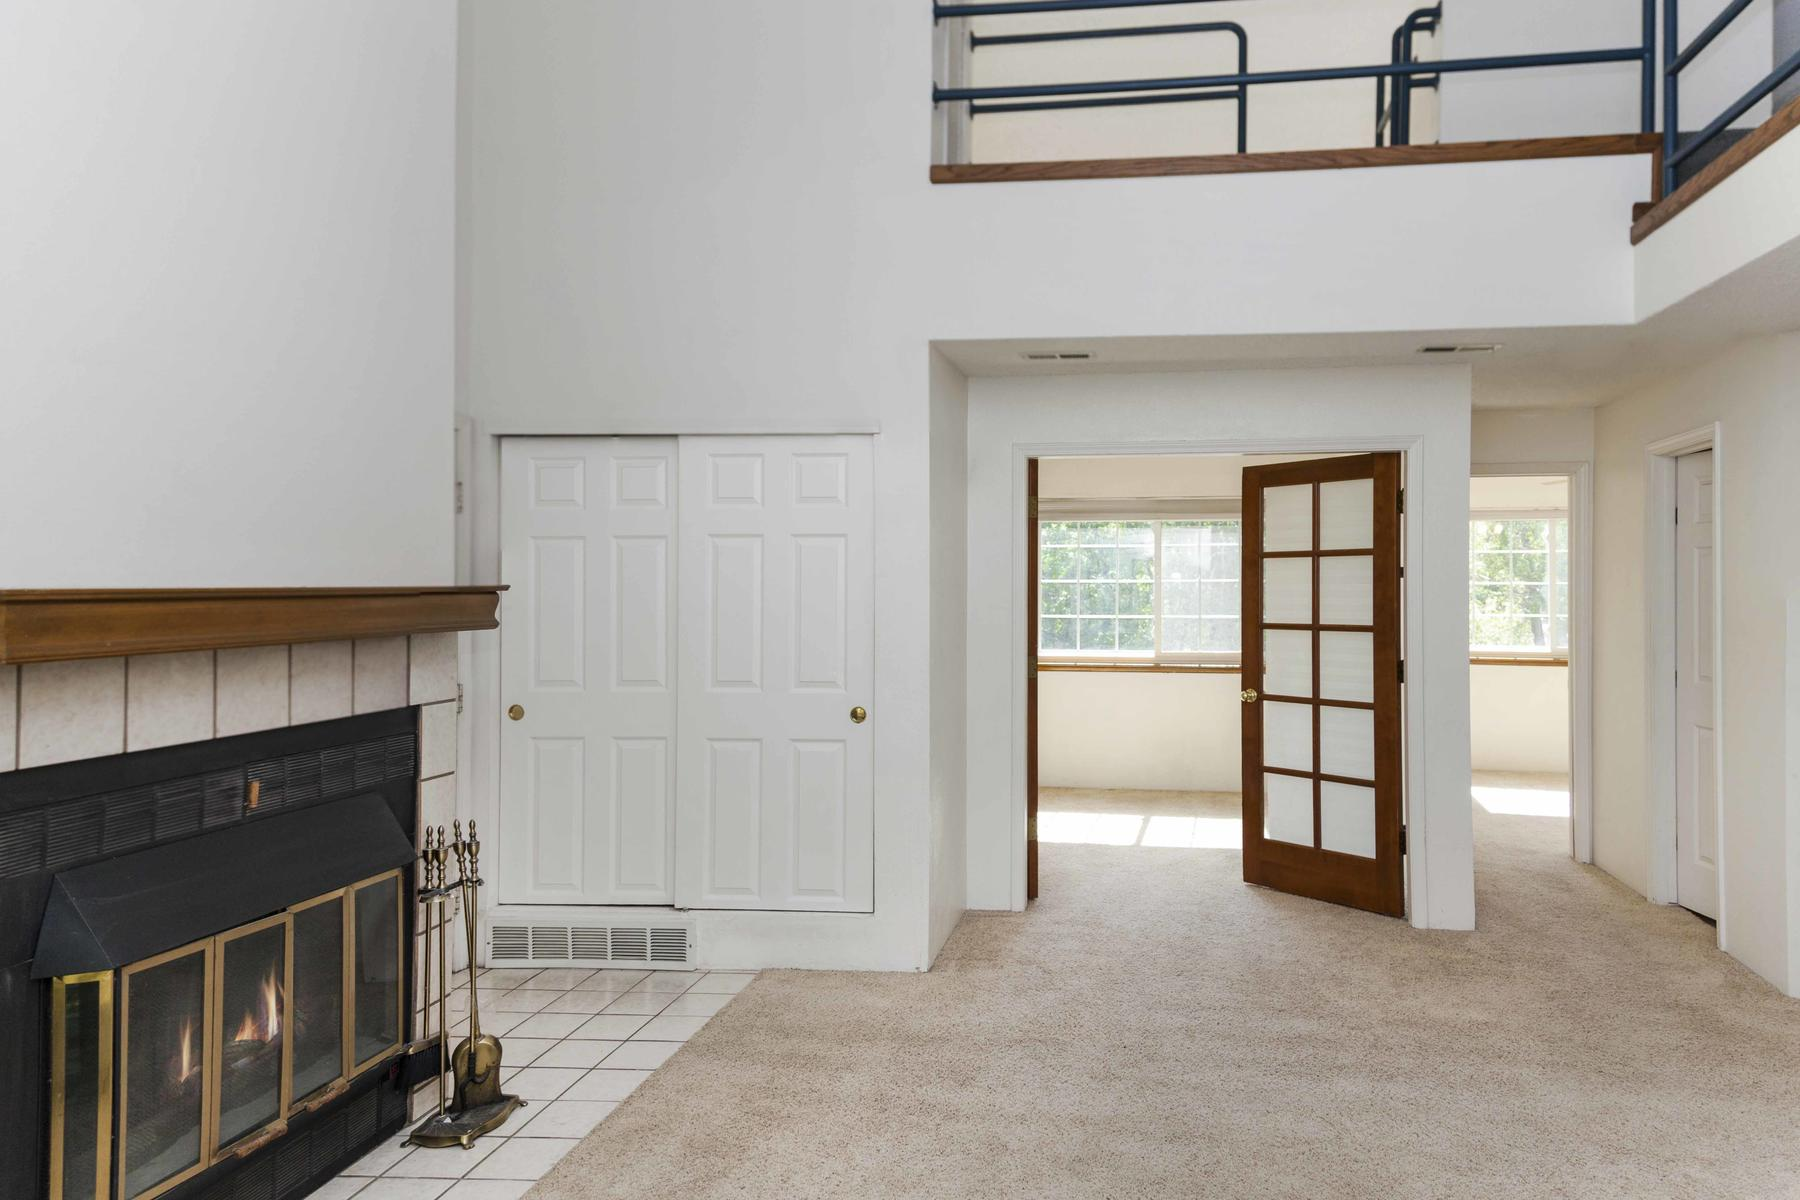 Additional photo for property listing at Updated Gem With A Loft And Garage 4791 White Rock Cir Boulder, Colorado 80301 United States